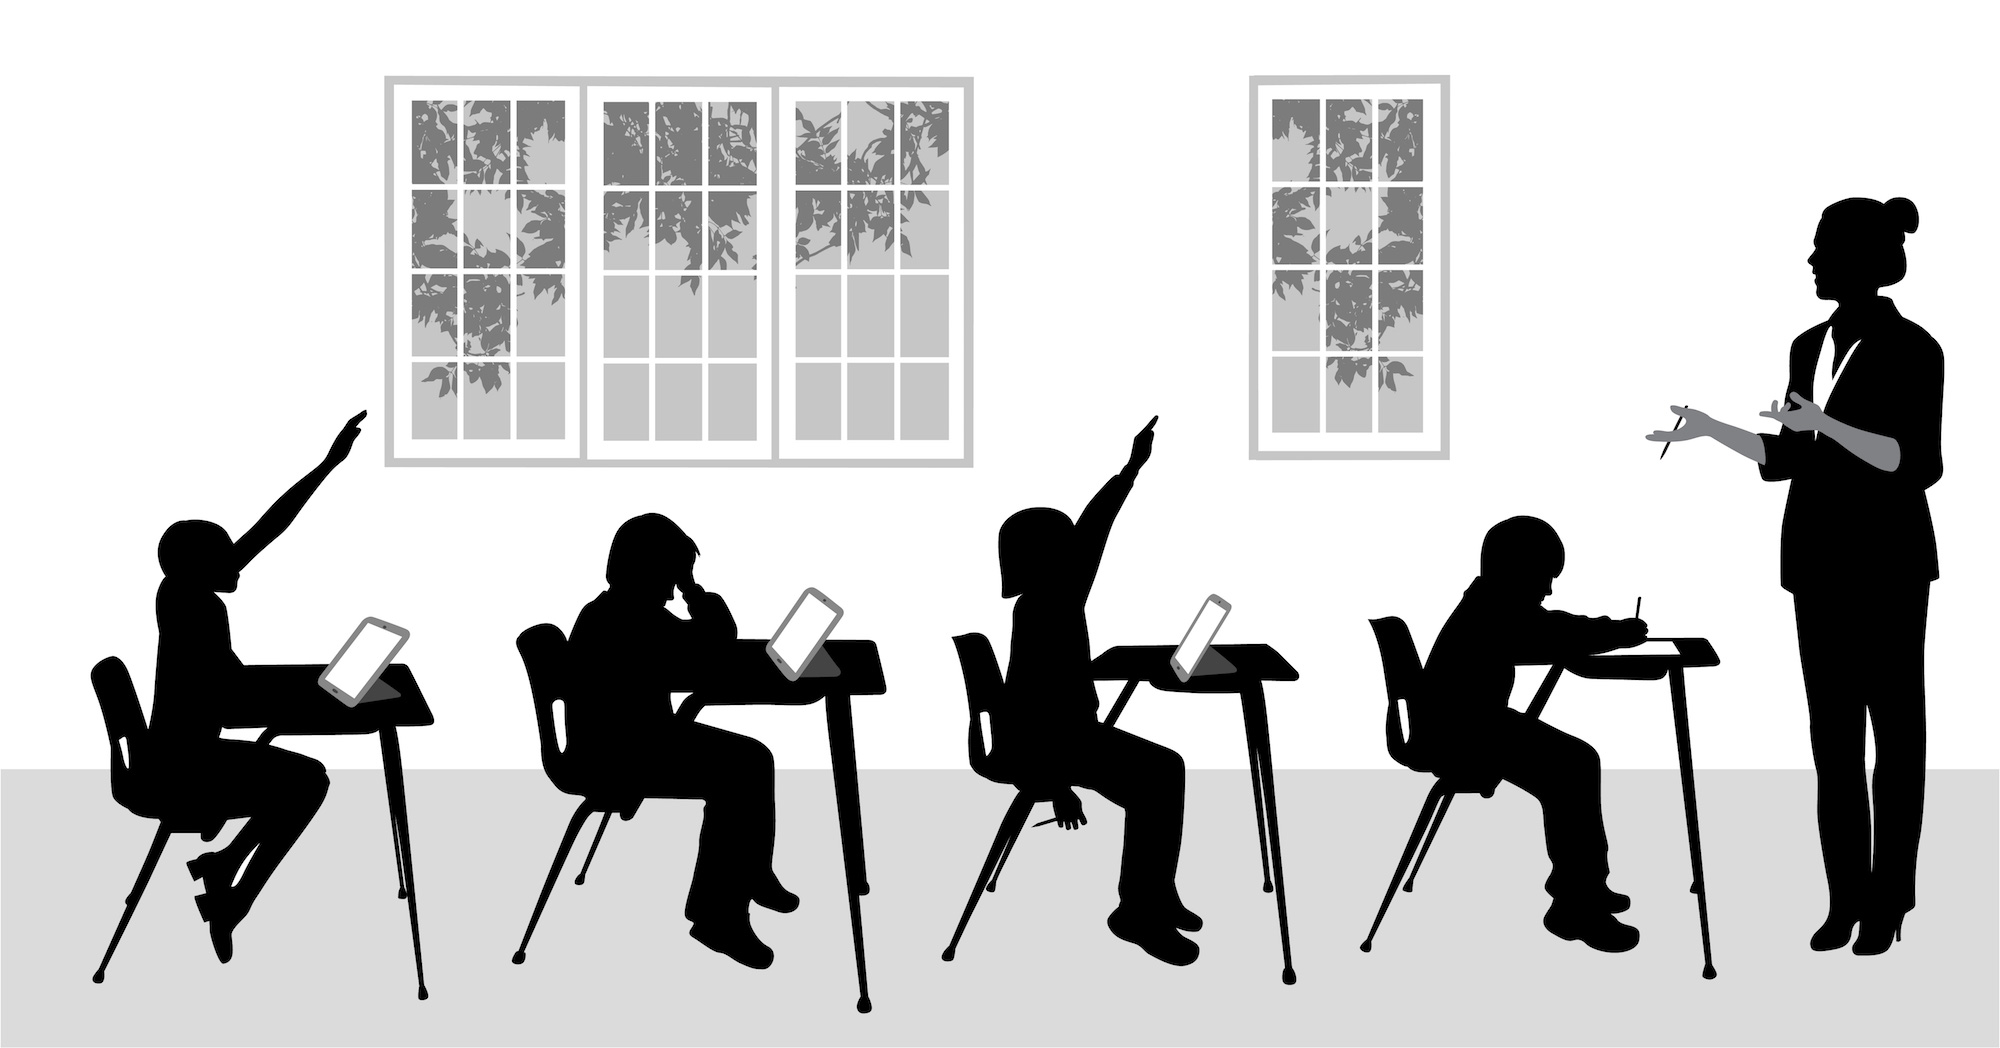 Sent home early: Lost learning in special education